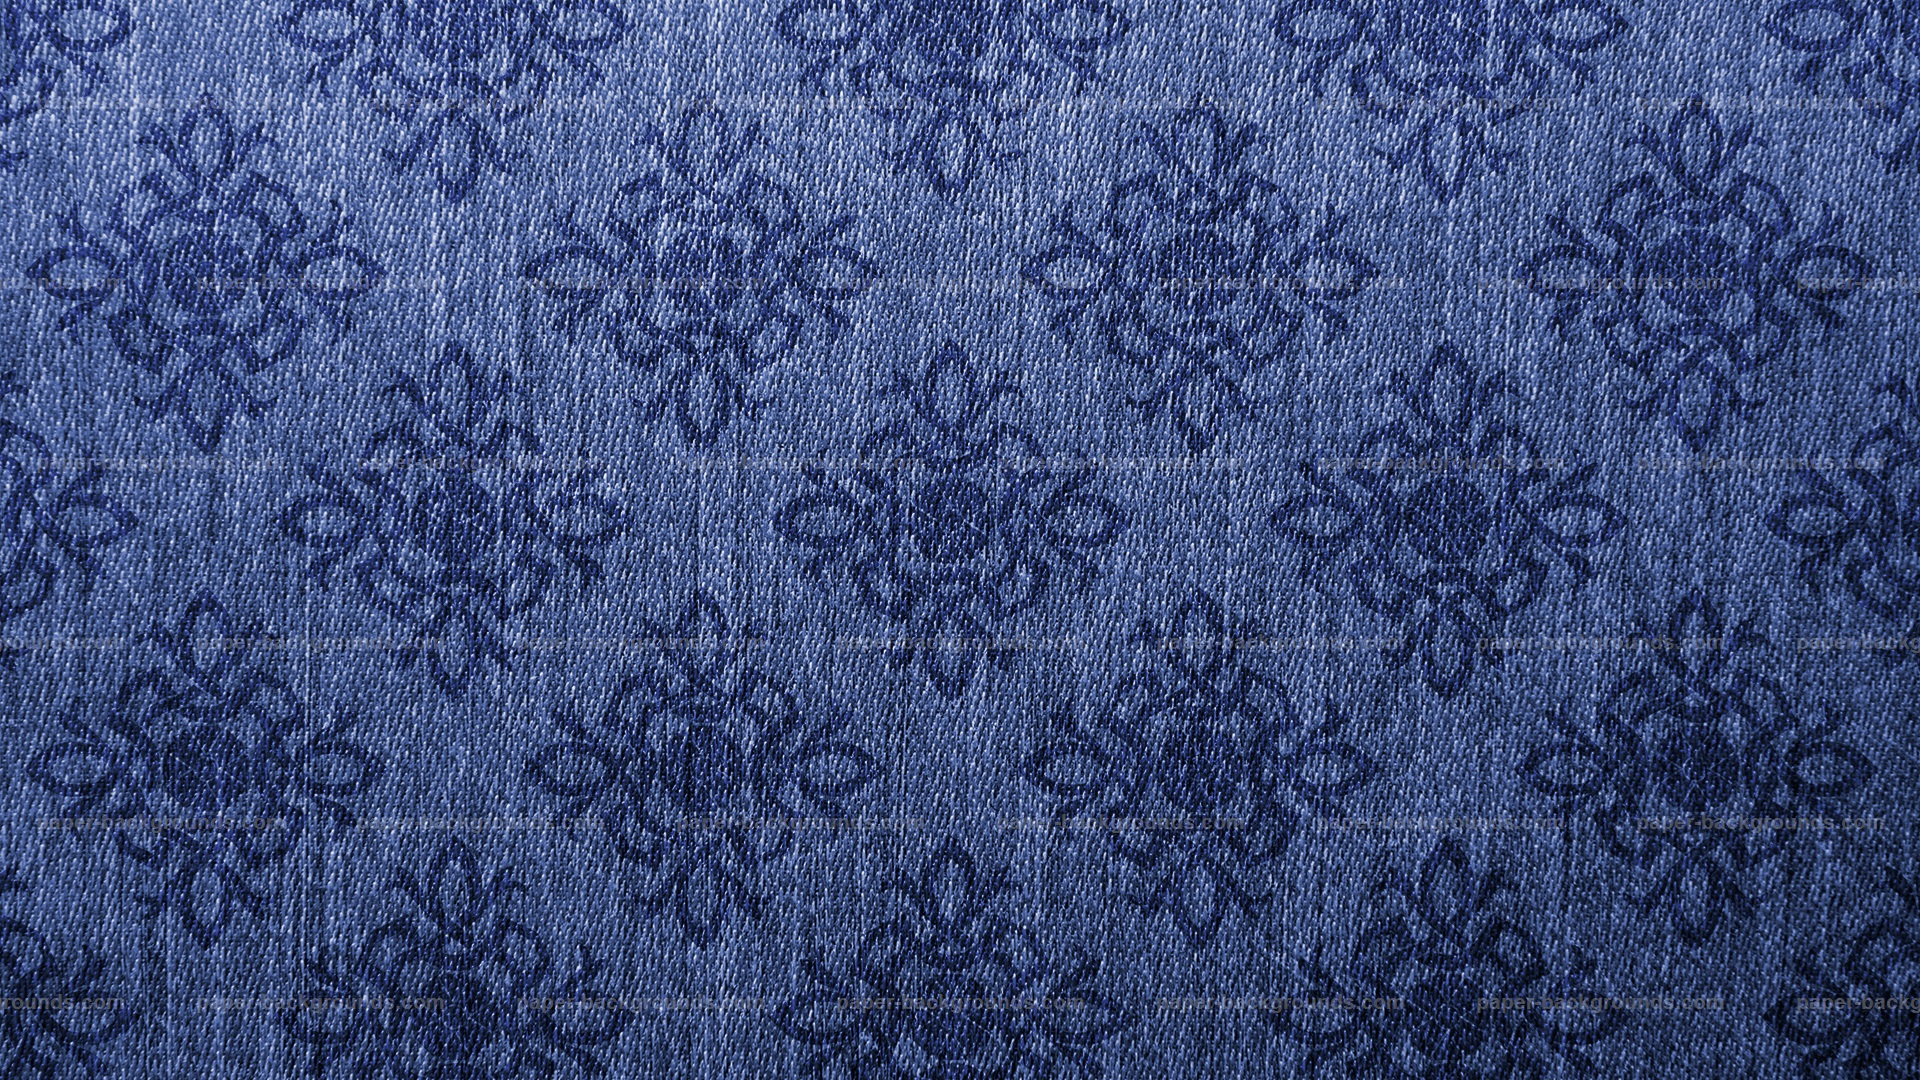 Dark Blue Damask Wallpaper Wallpapersafari